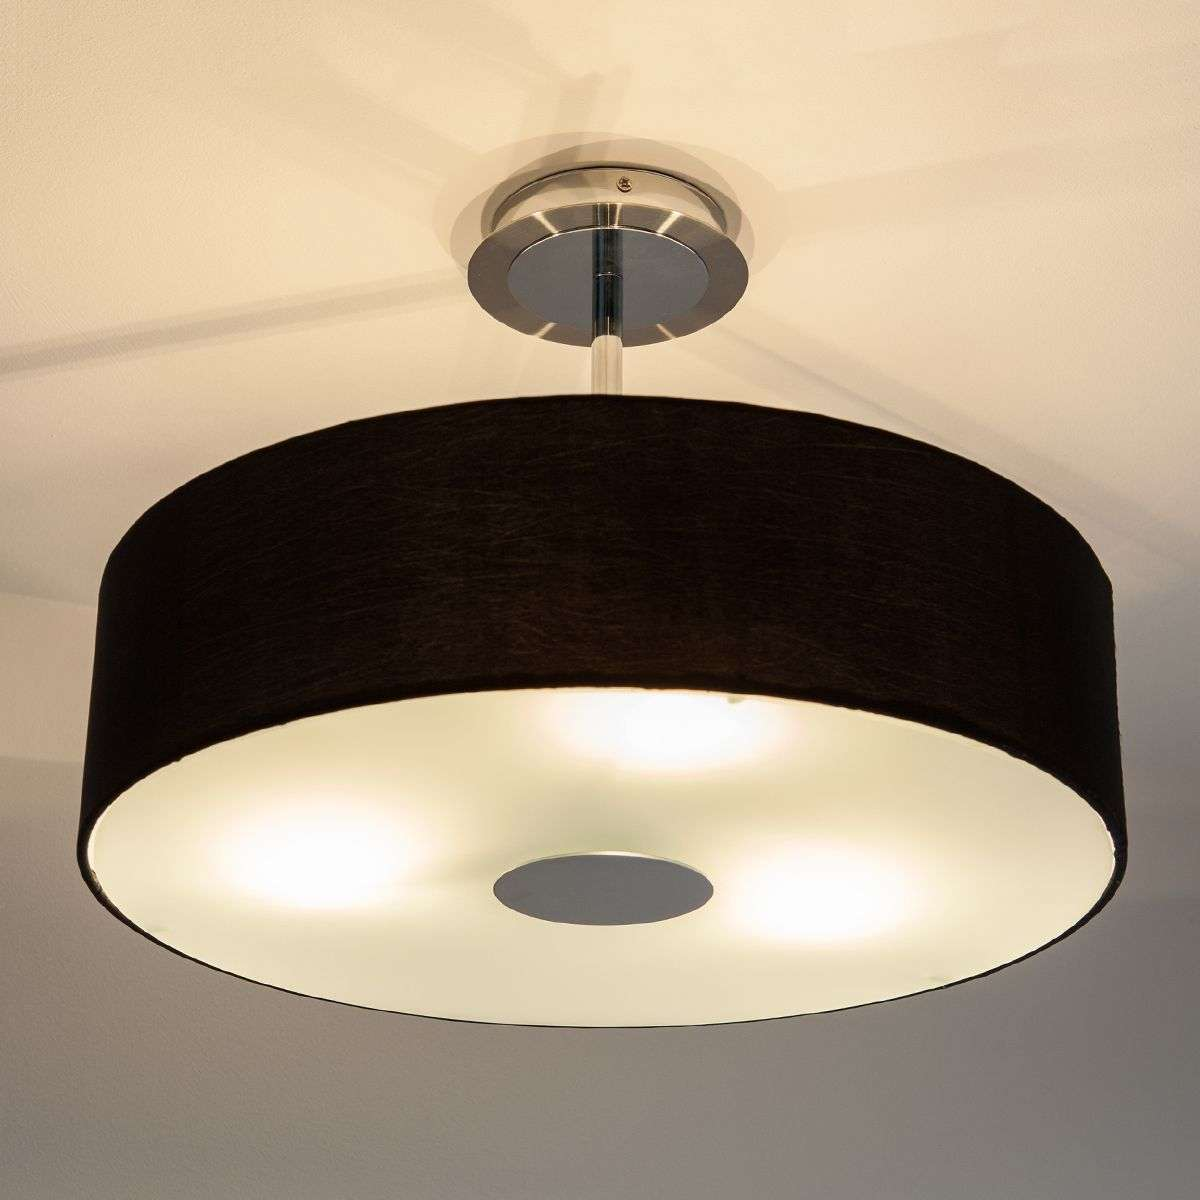 Light In The Ceiling: Black Ceiling Light Gabriella